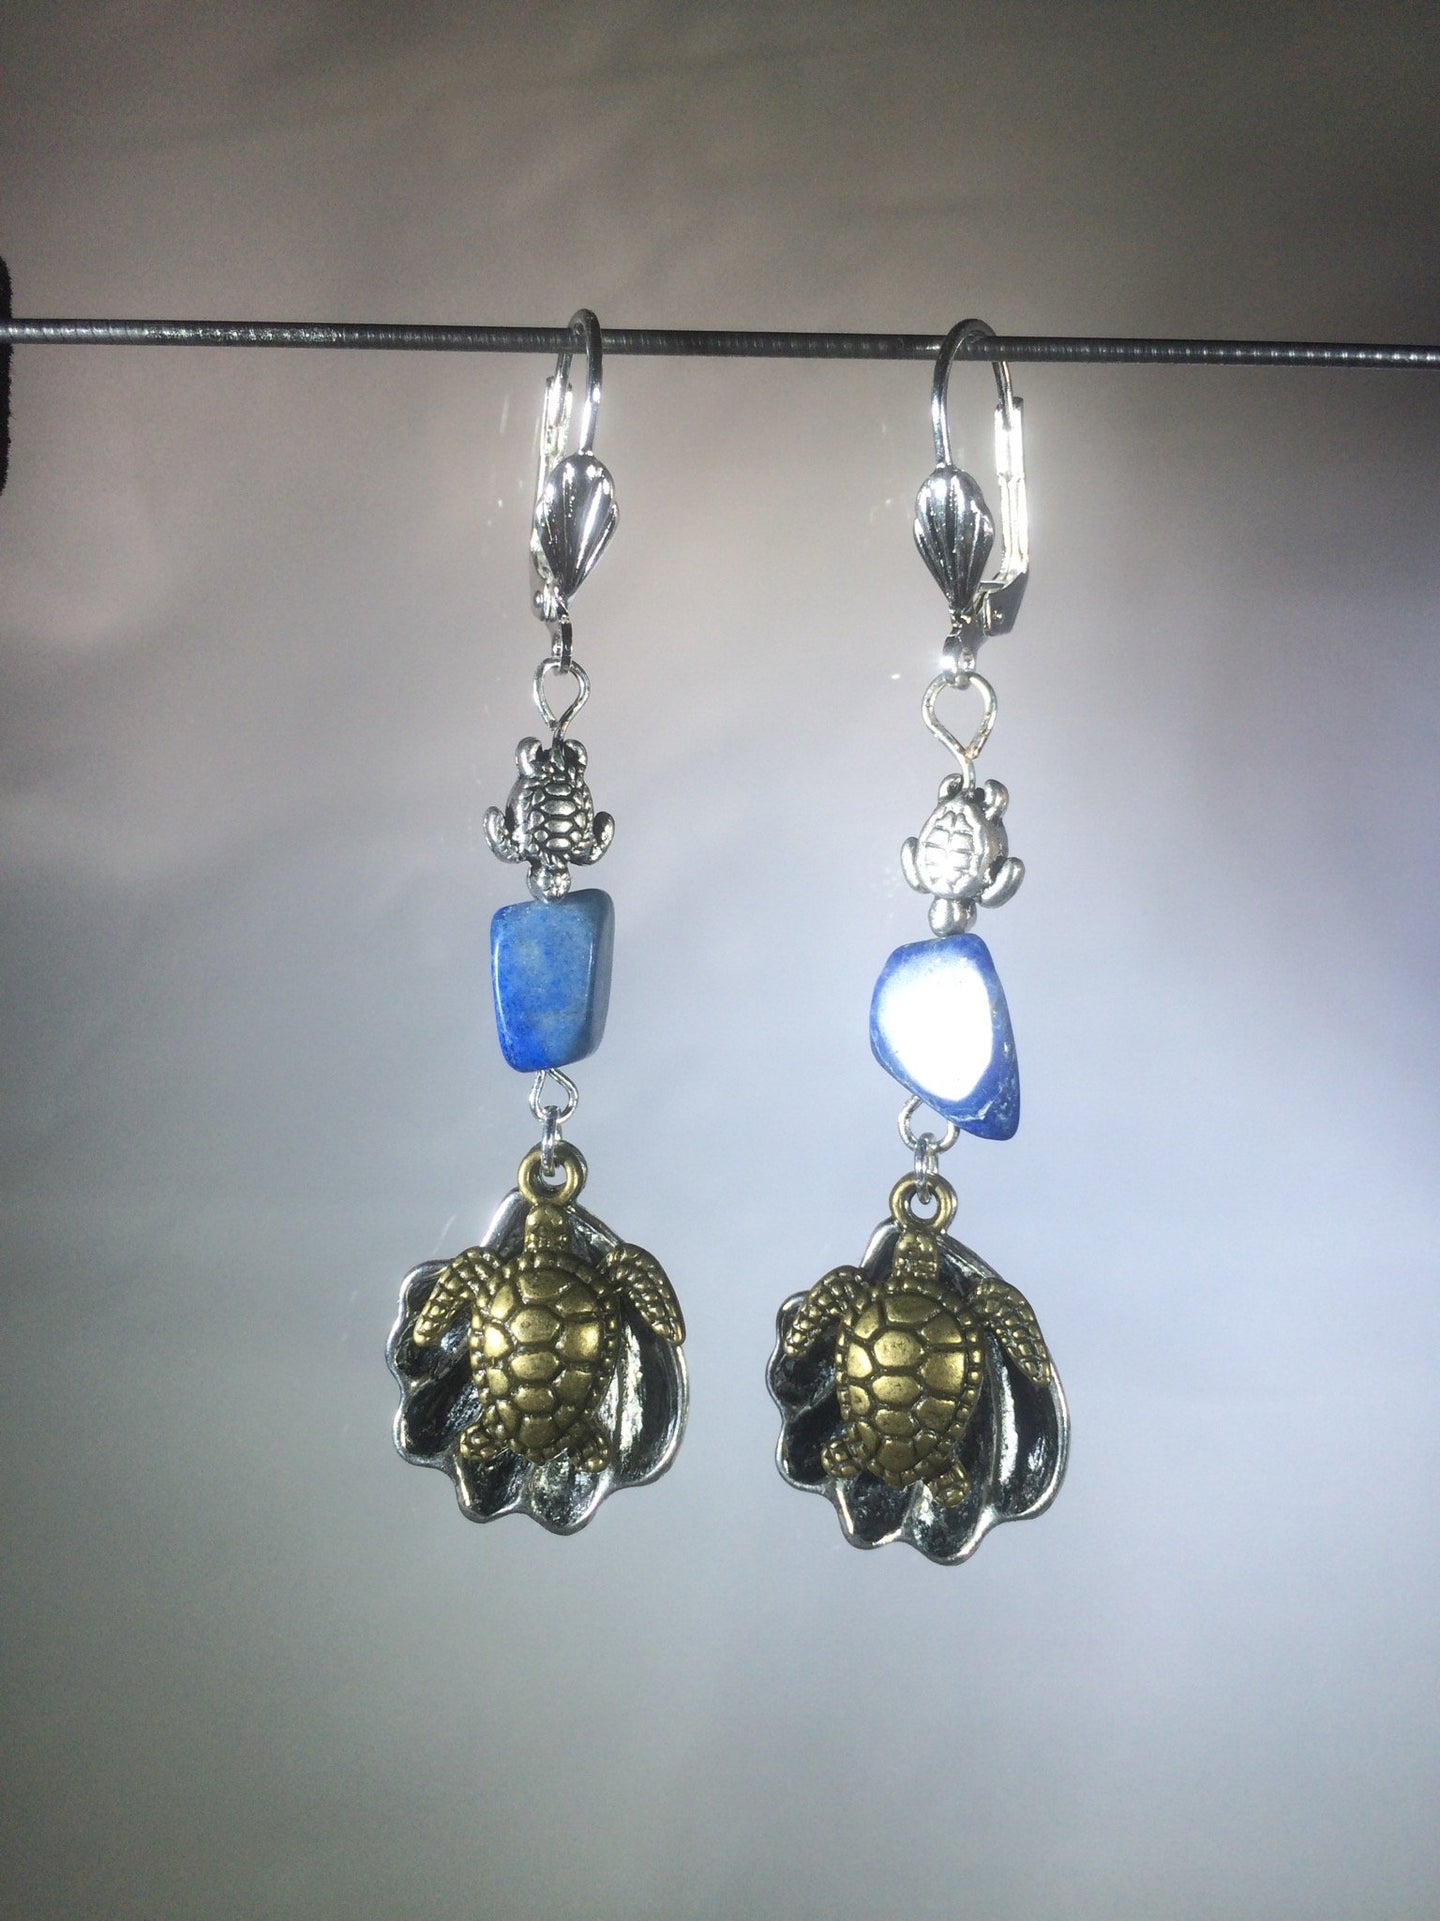 Leverback earrings made from plated metal charms and findings with an 8mm lapis lazuli bead to add a vibrant blue color.